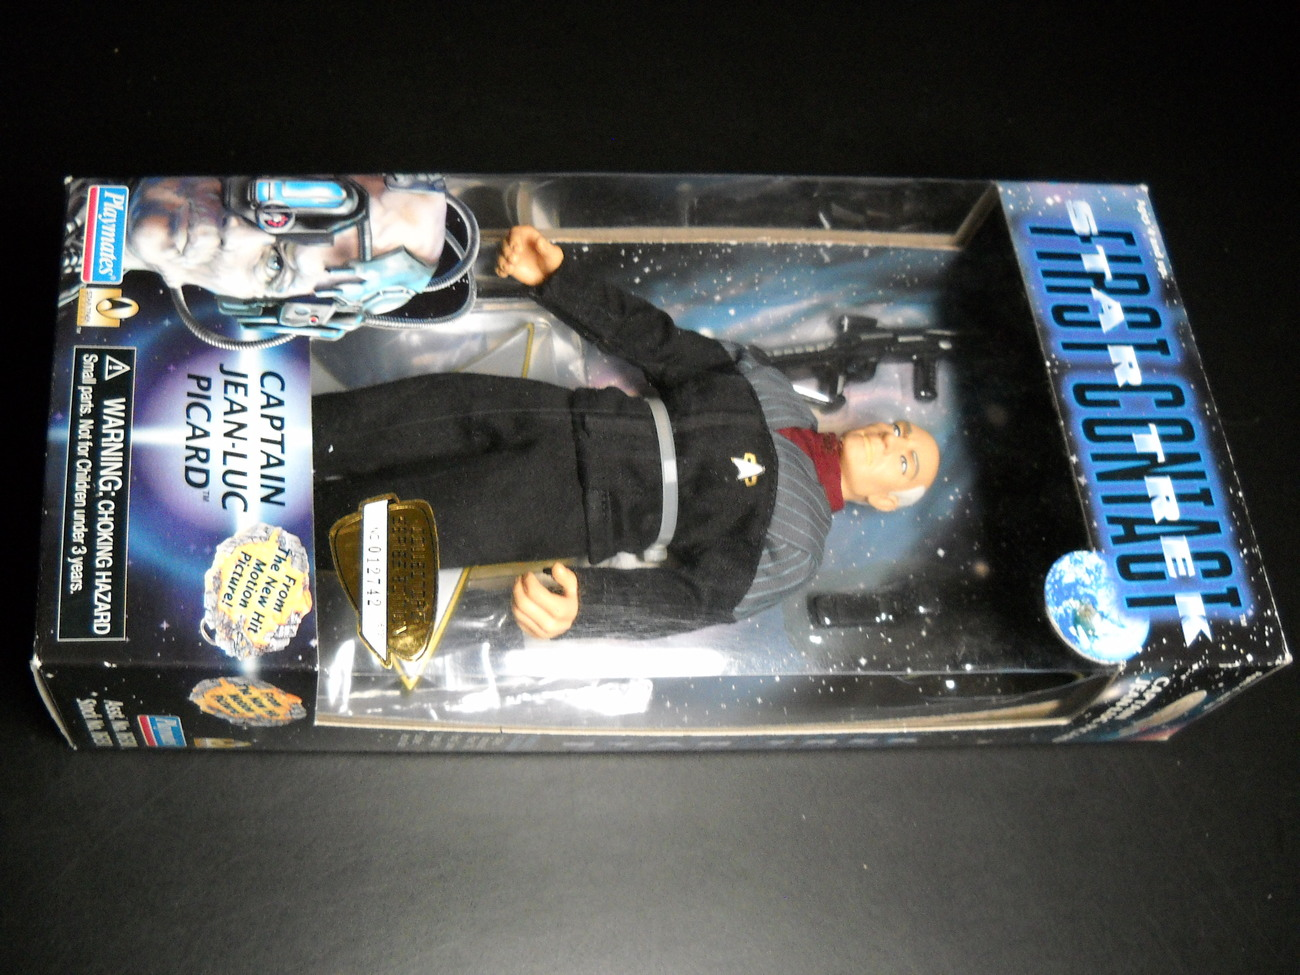 Toy star trek playmates star trek first contact captain jean luc picard 1996 9 inch boxed sealed 01